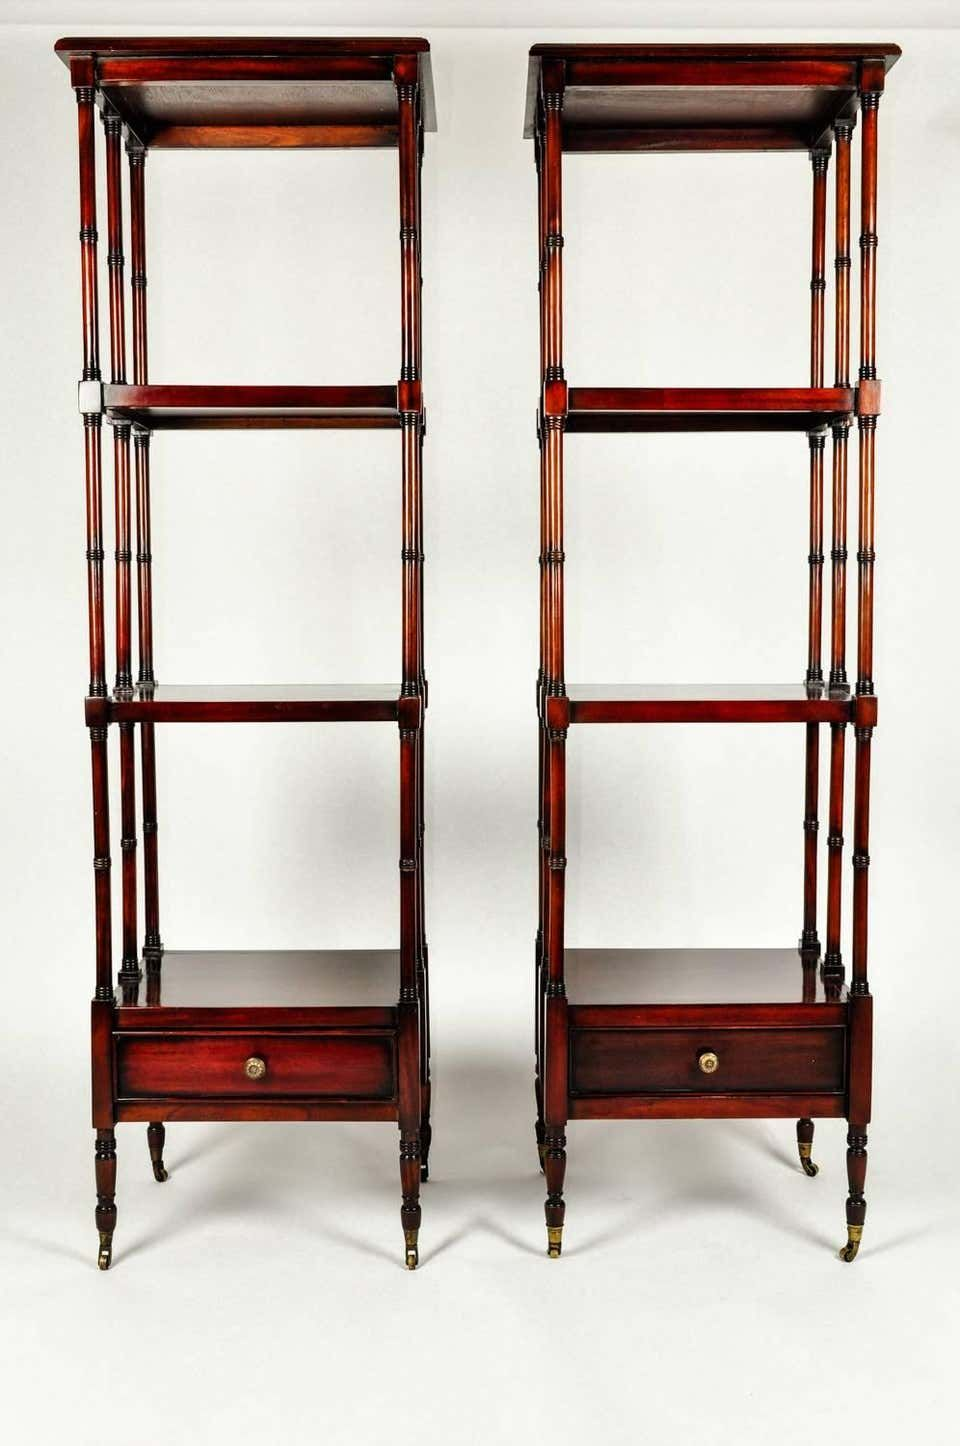 For Sale on 1stdibs - Vintage pair solid mahogany wood display shelves / etageres with lower bottom drawer. Both pieces are in excellent vintage condition. Minor wear consistent